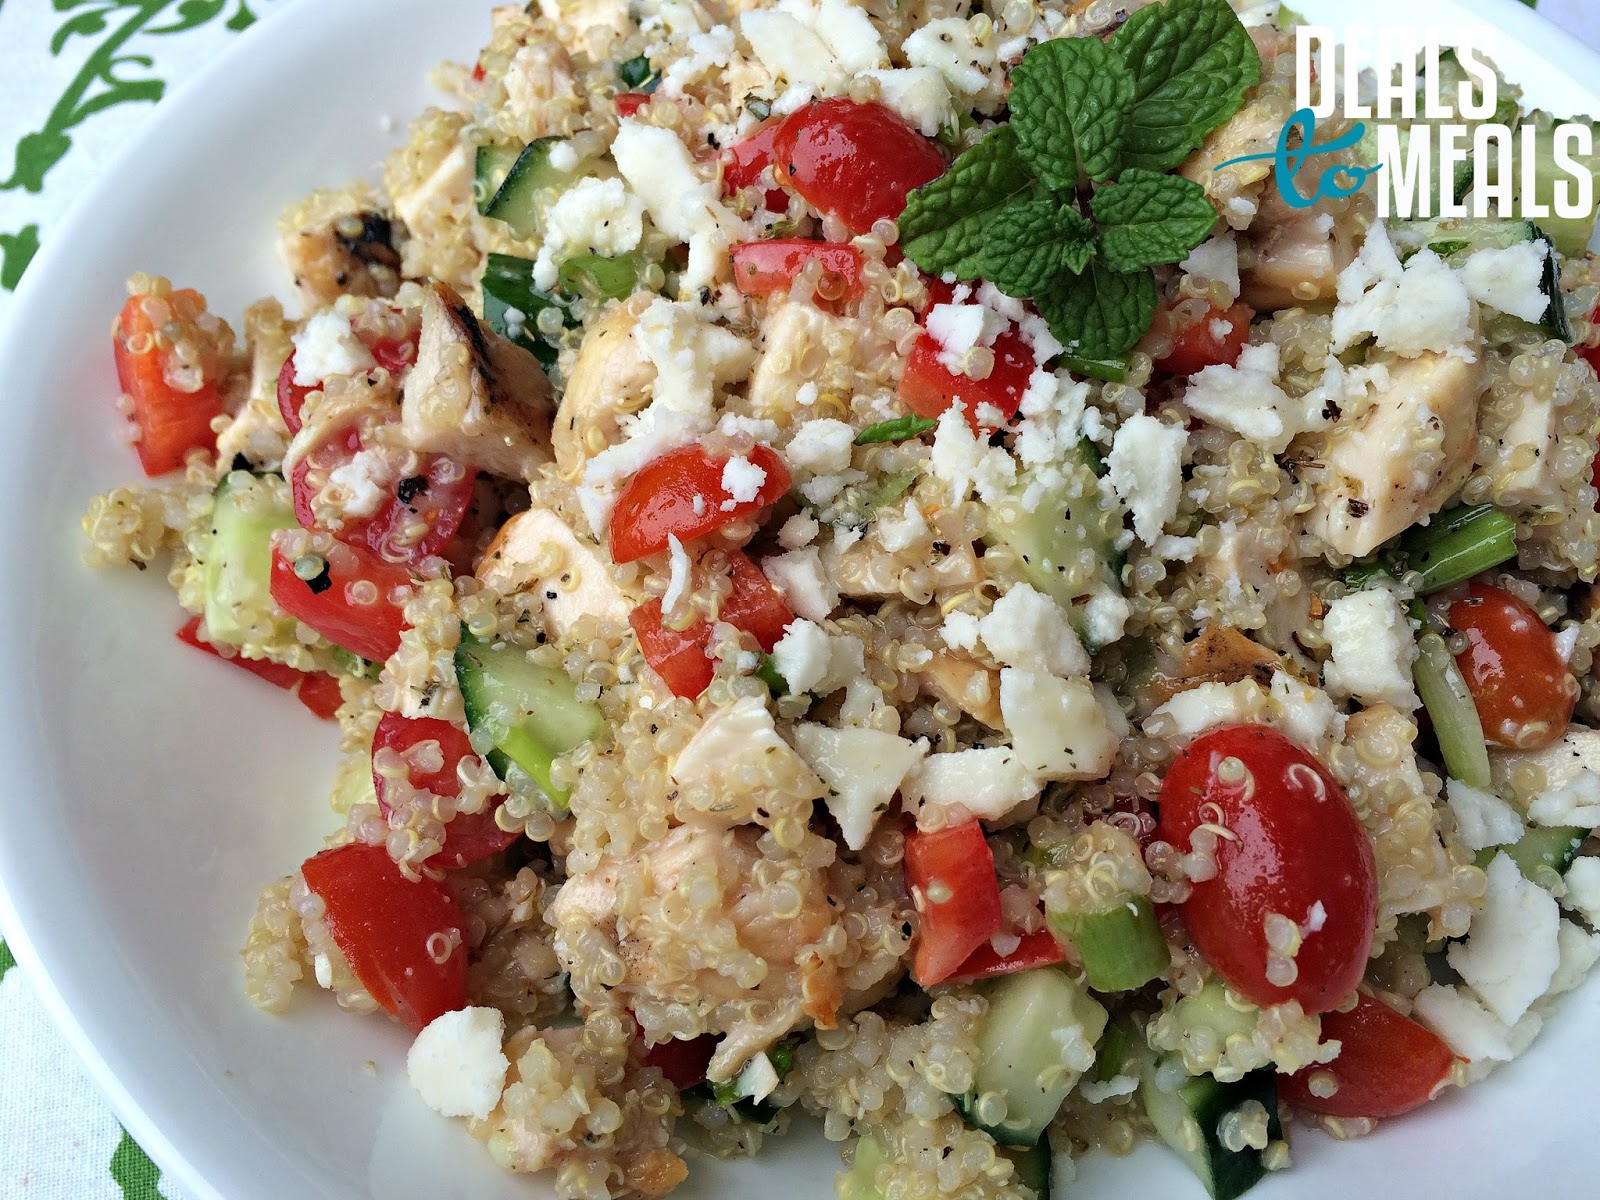 ... Recipe: Grains, Deals to Meals, Greek Quinoa Salad with Lemon Dressing